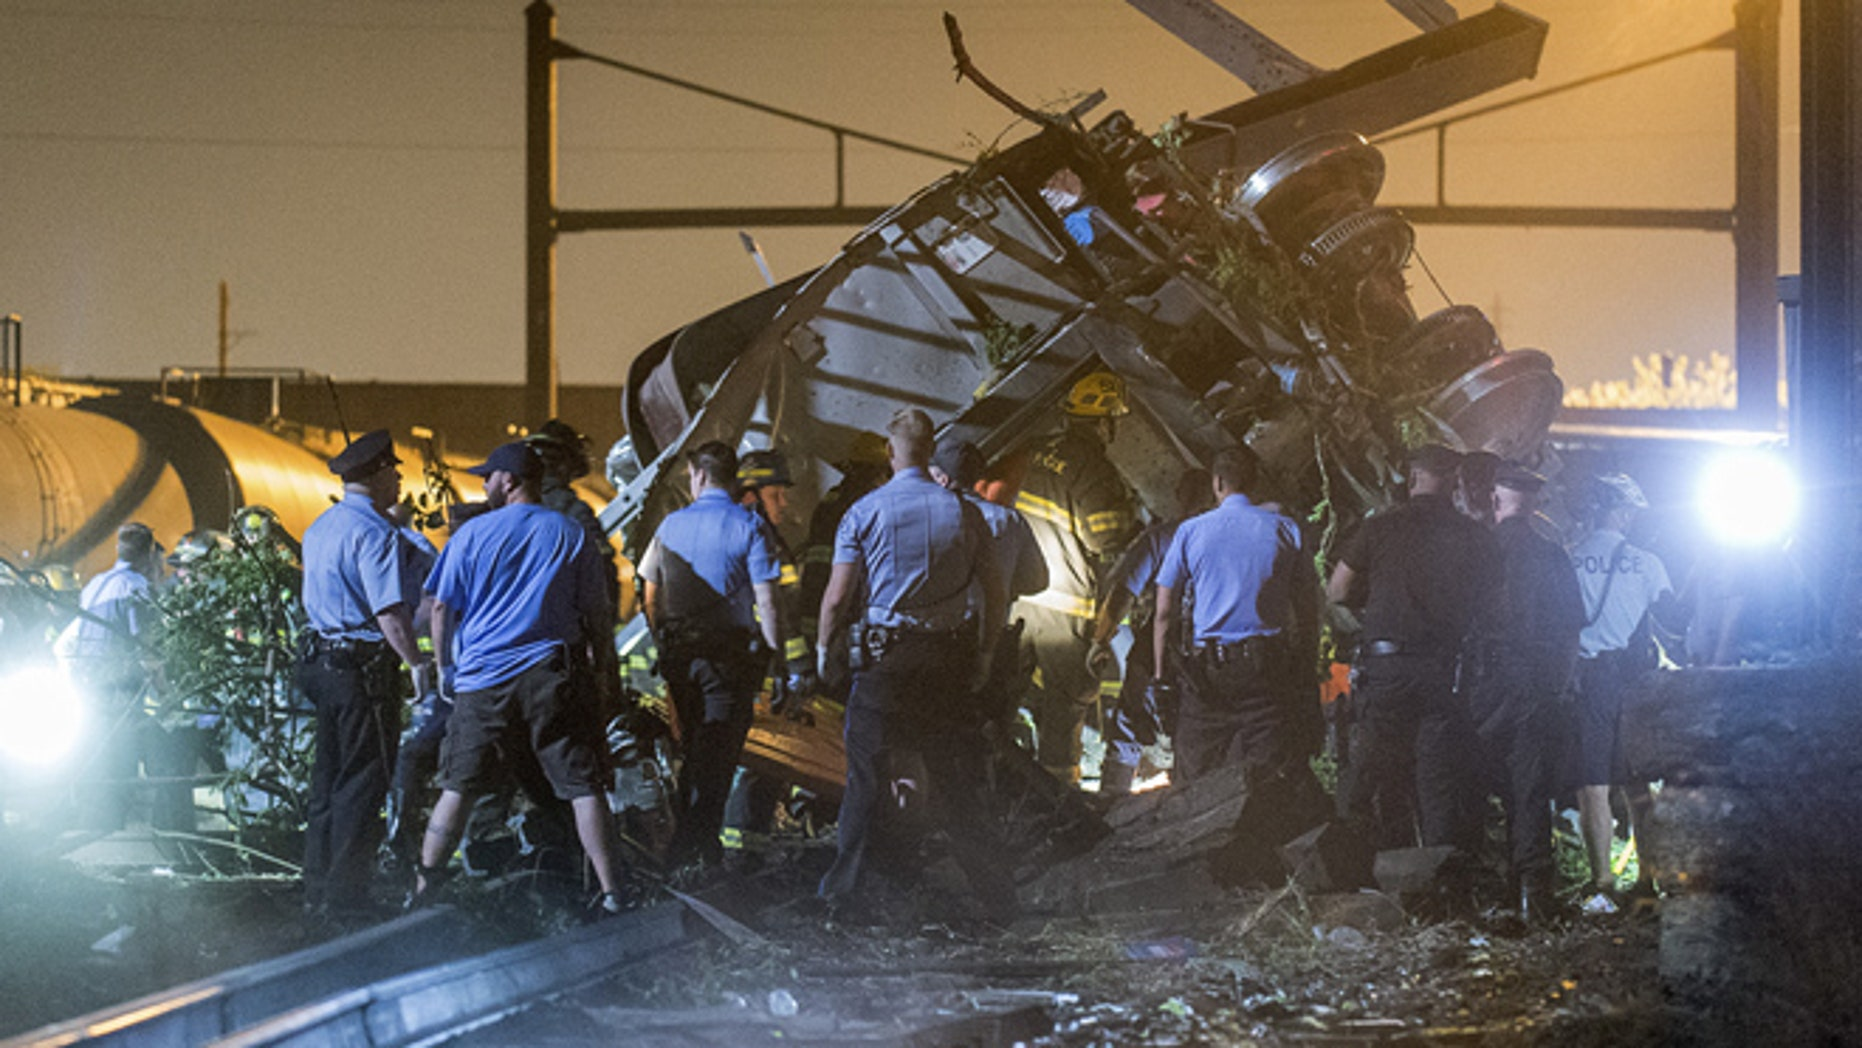 FILE 2015: Rescue workers search for victims in the wreckage of a derailed Amtrak train in Philadelphia